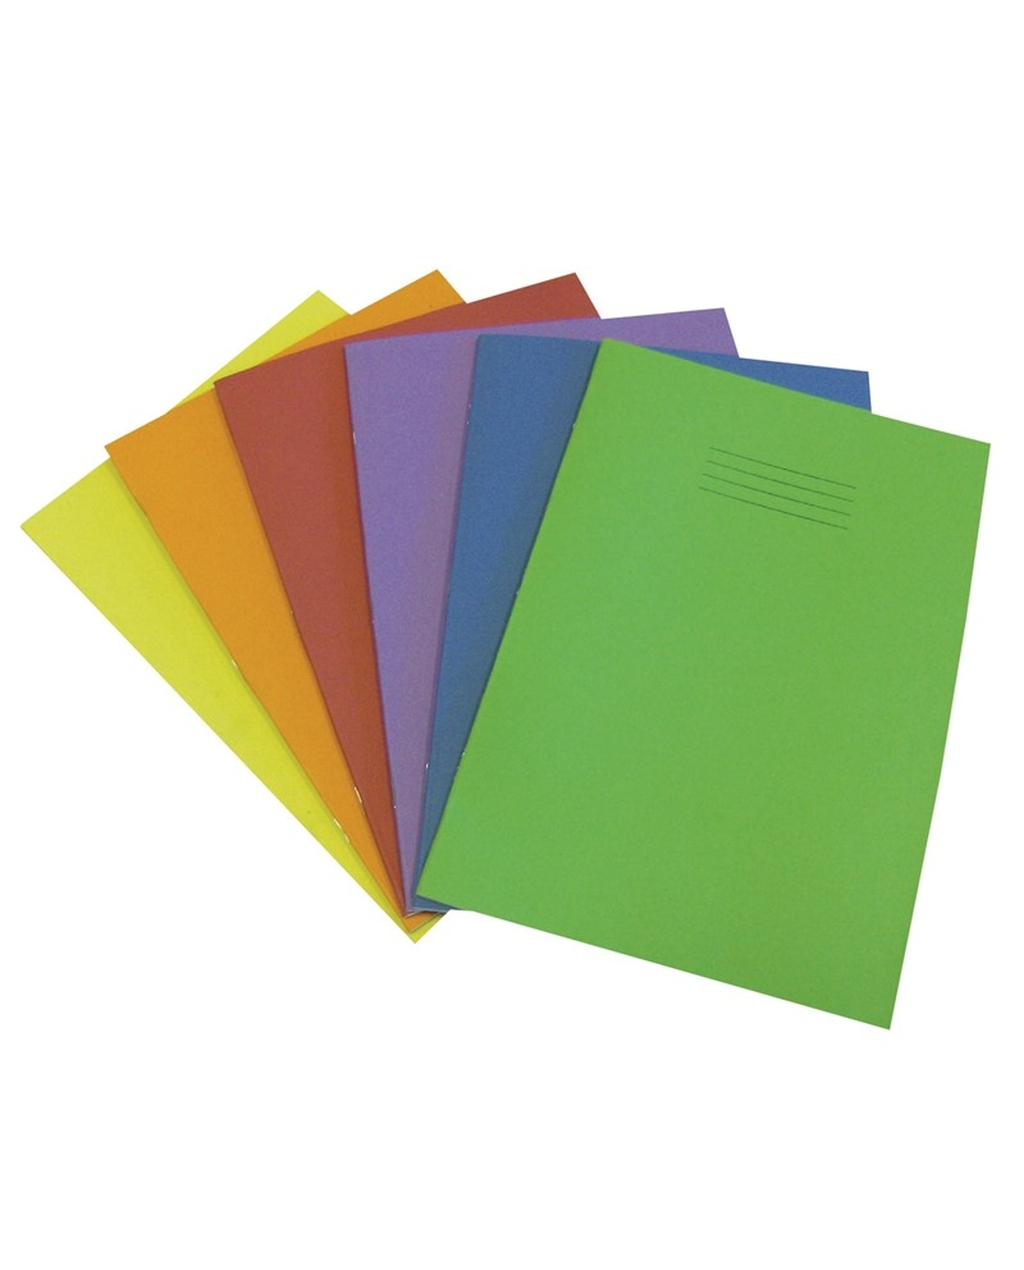 Exercise Book A4 (297 x 210mm) Dark Green Cover Plain - No Ruling 48 Pages